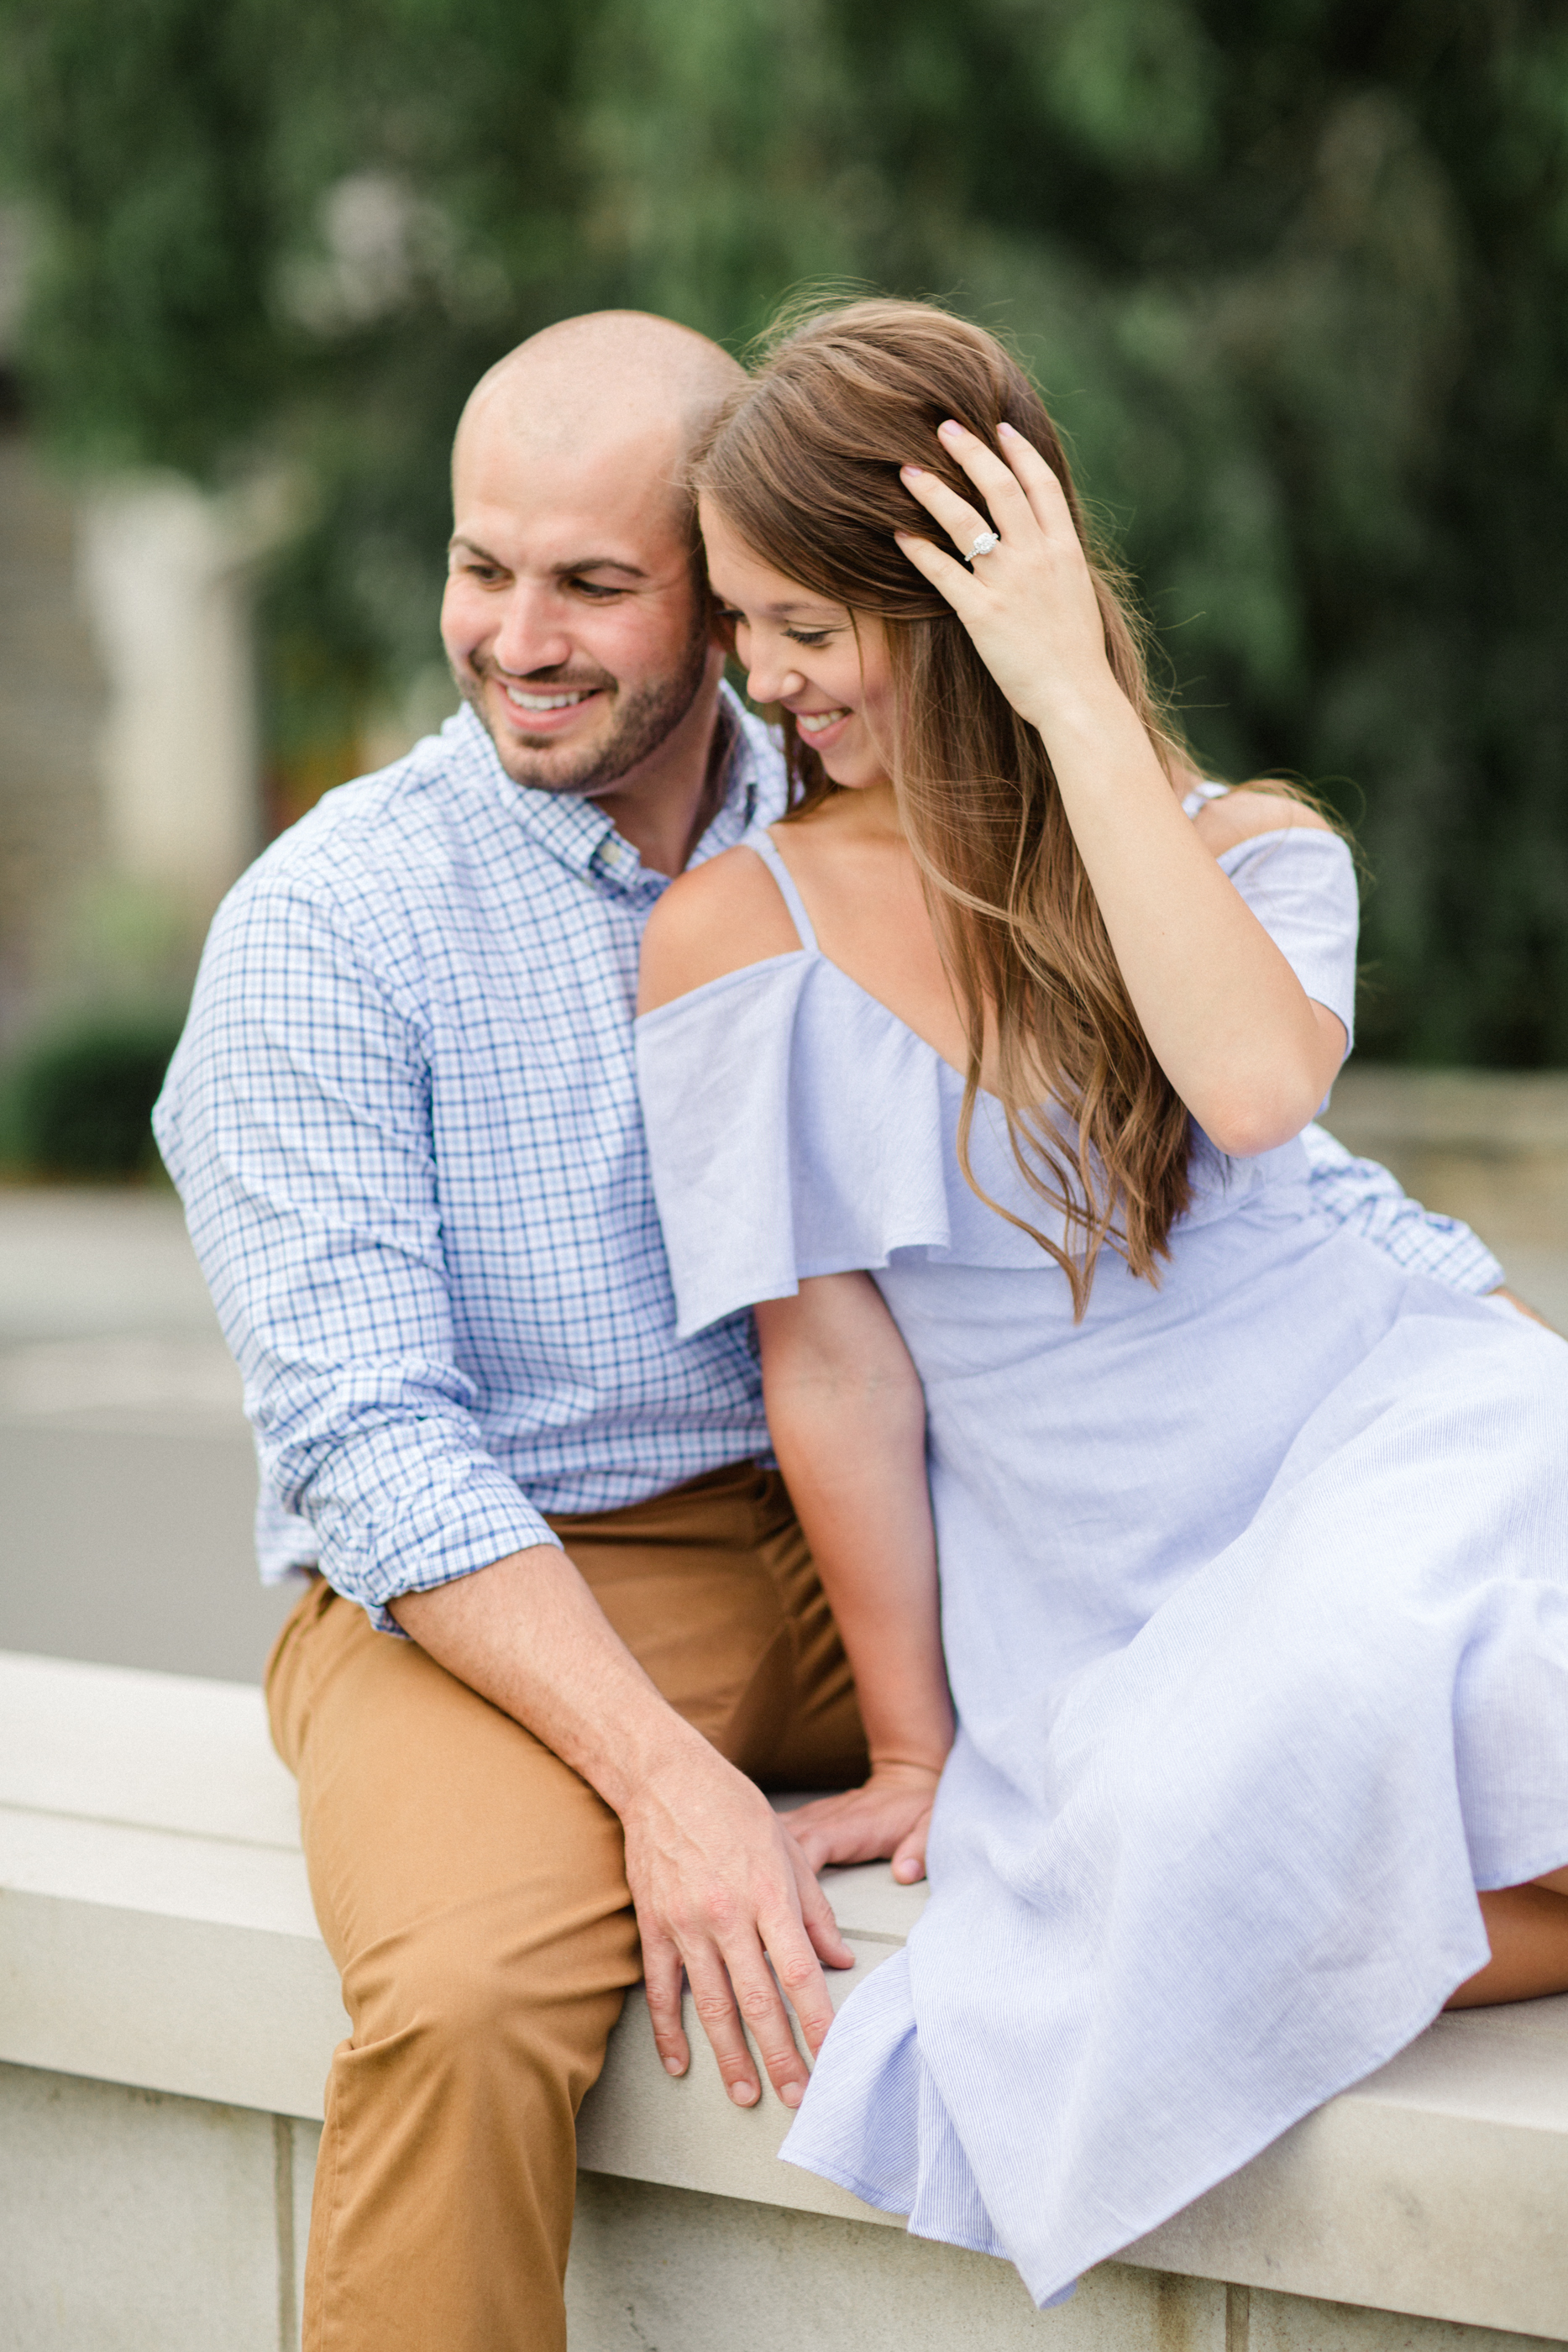 University of Scranton Engagement Session Photos_JDP-32.jpg